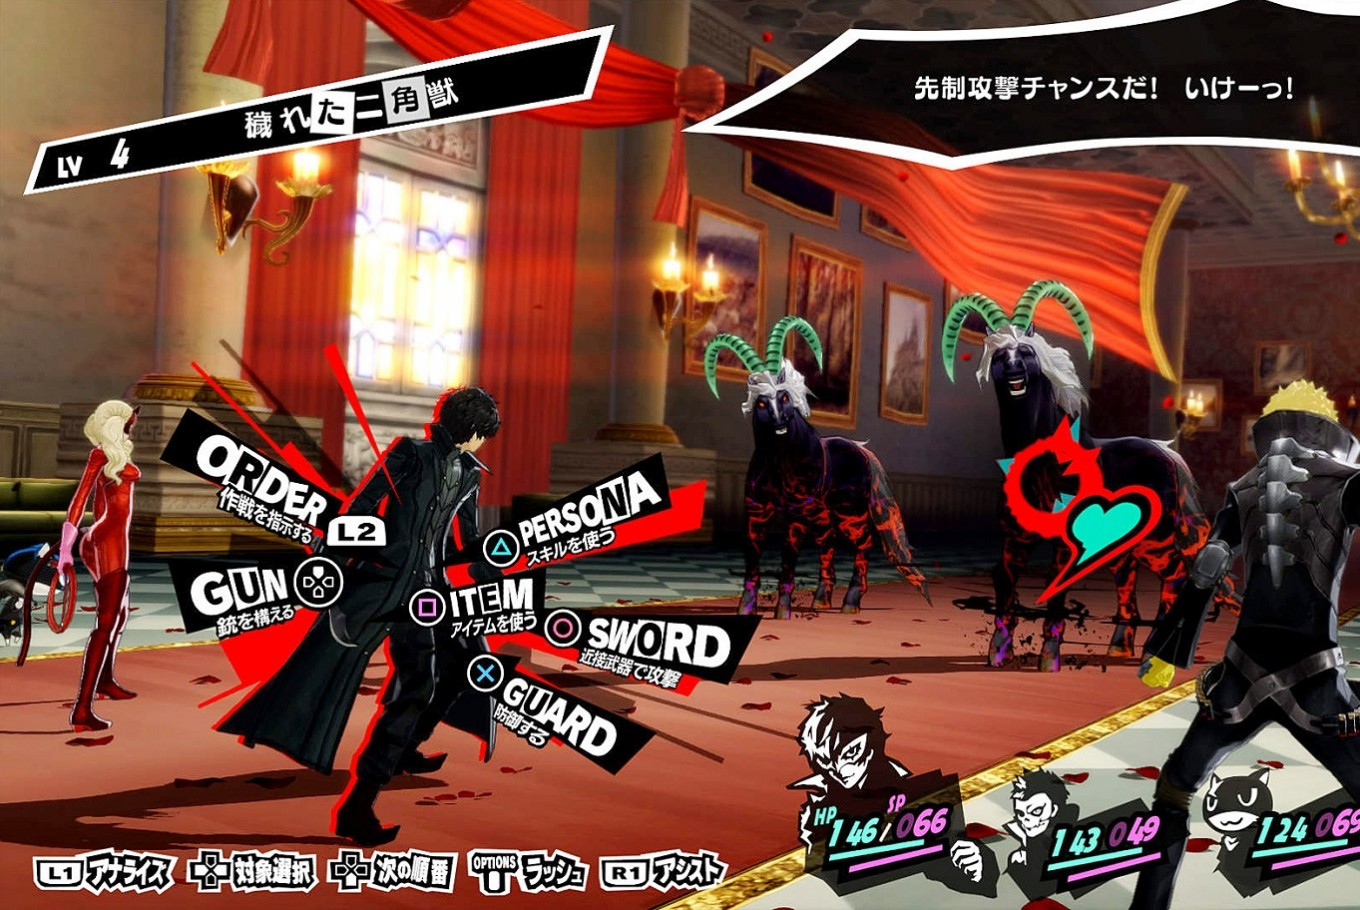 'Persona 5': One of Japan's most immersive video games